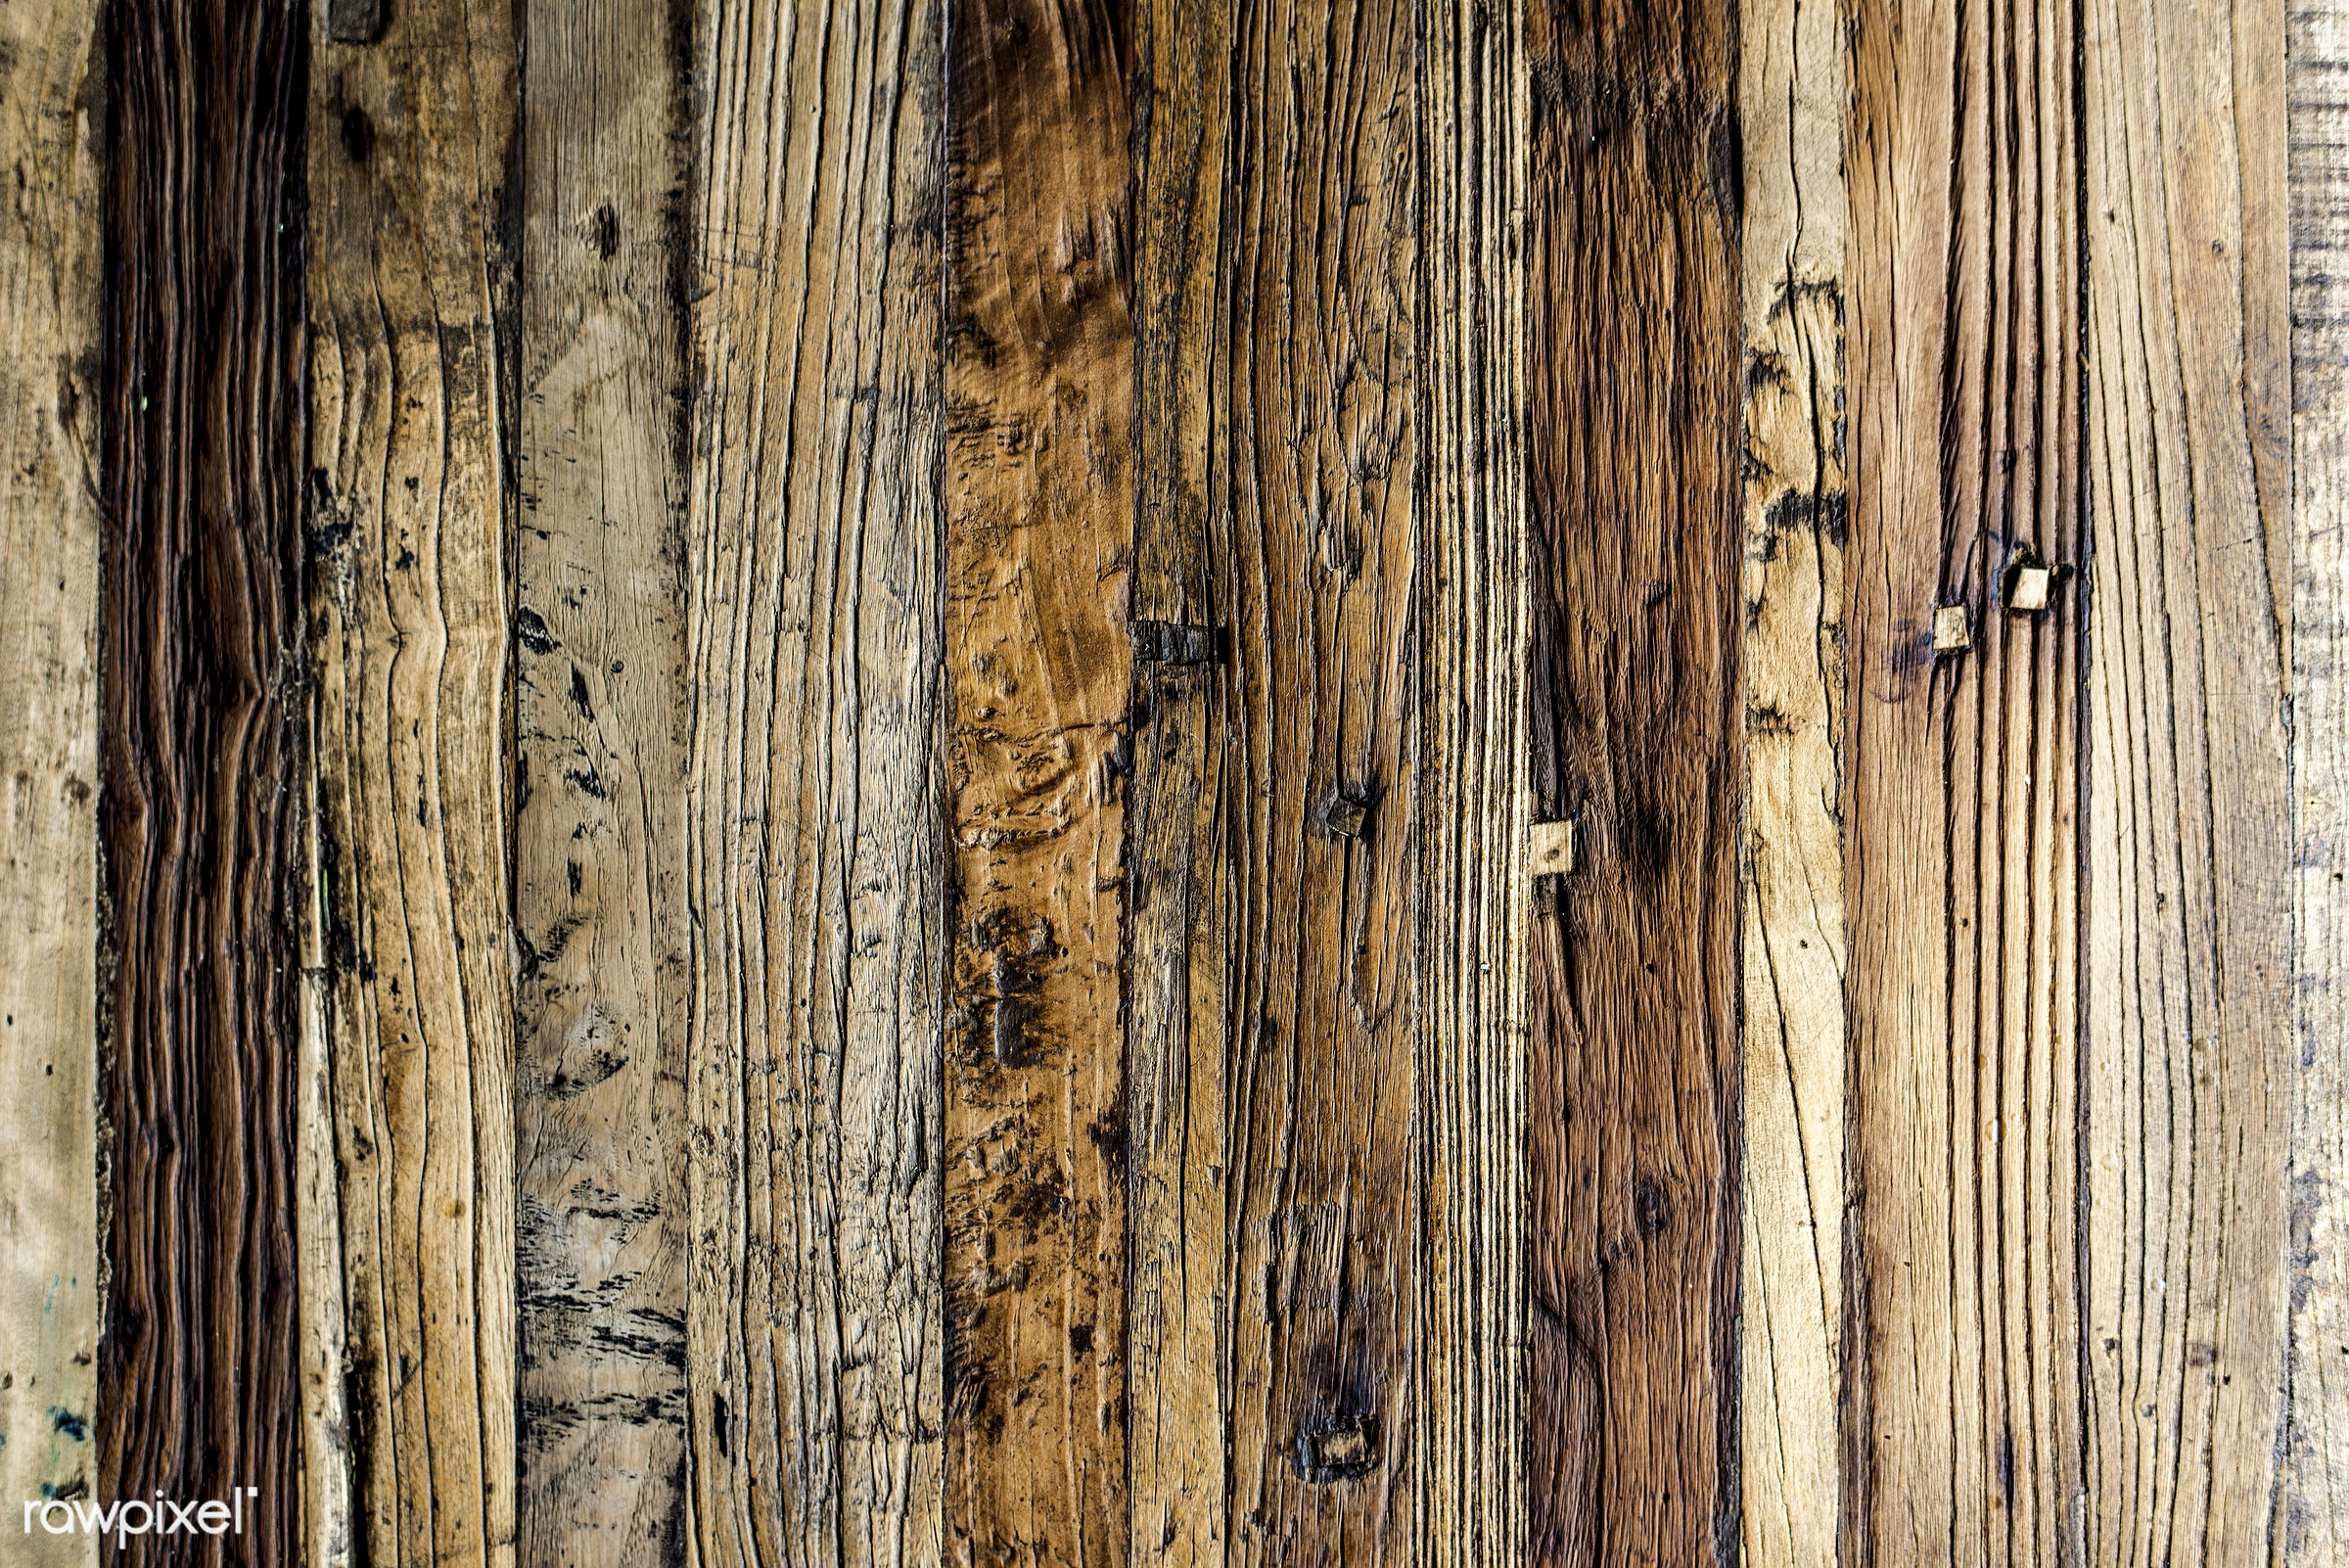 vertical, old, surface, wood, exterior, plank, grunge, ancient, timber, decorate, structure, obsolete, woodwork, wooden,...